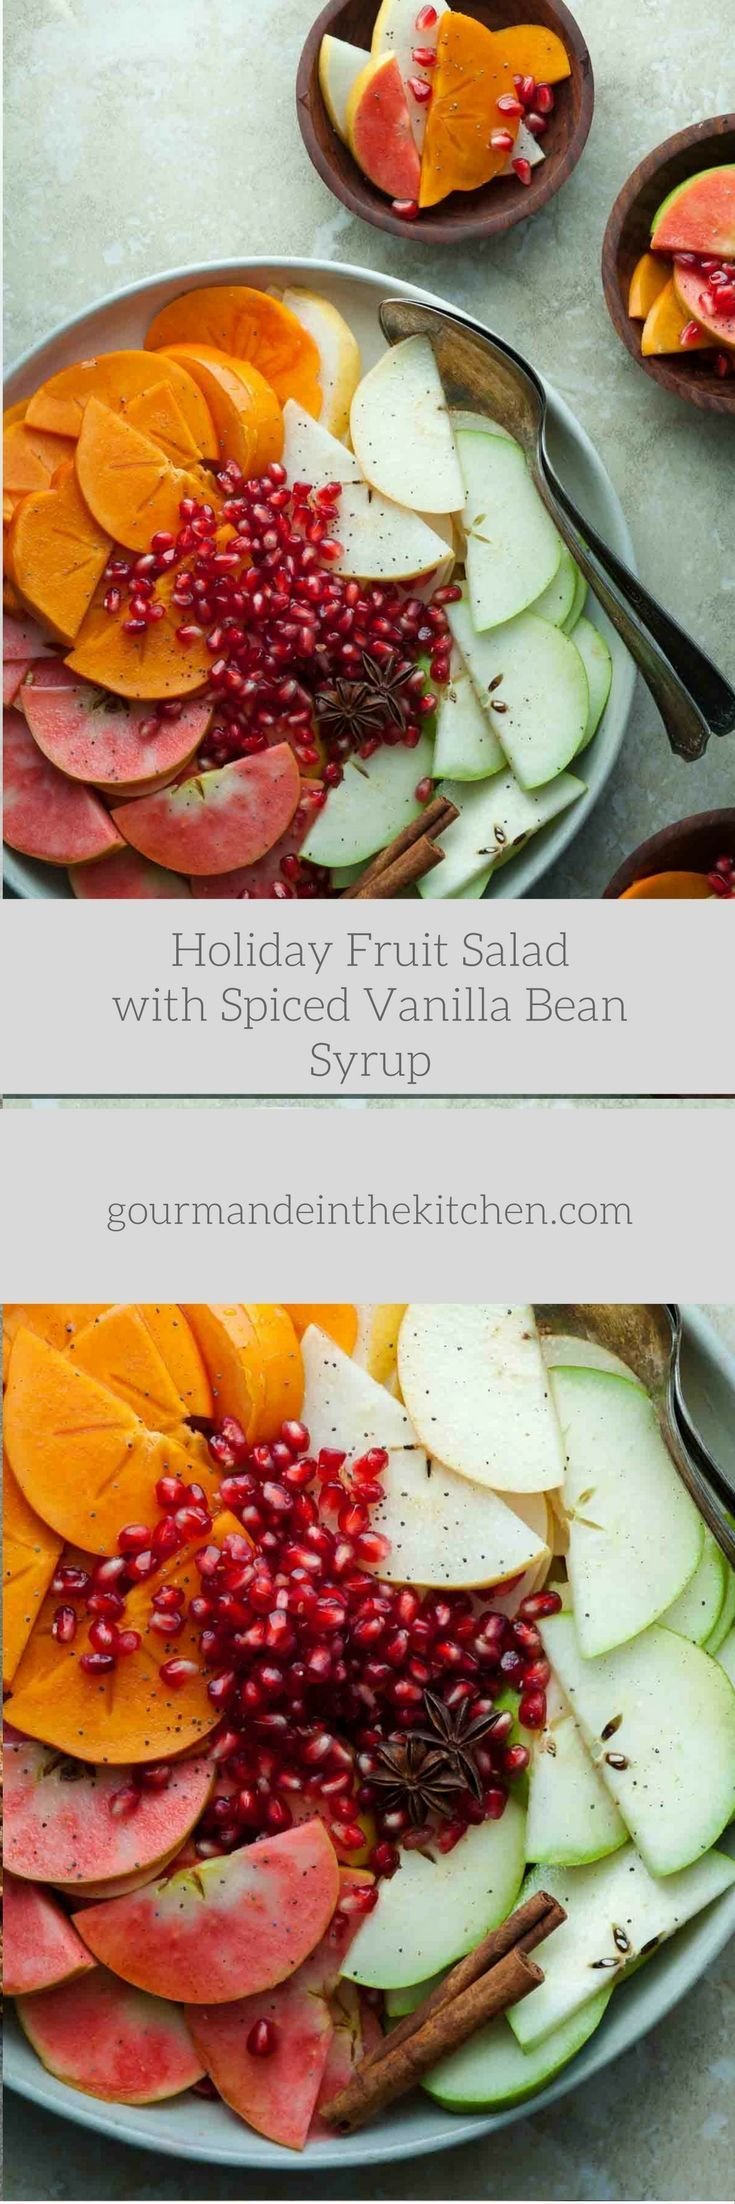 A holiday fruit salad filled with apples, pears, persimmons, pomegranate seeds and seasonal spices. There's nothing better than a bowl of fresh fruit to break up the assault of overly rich foods we…